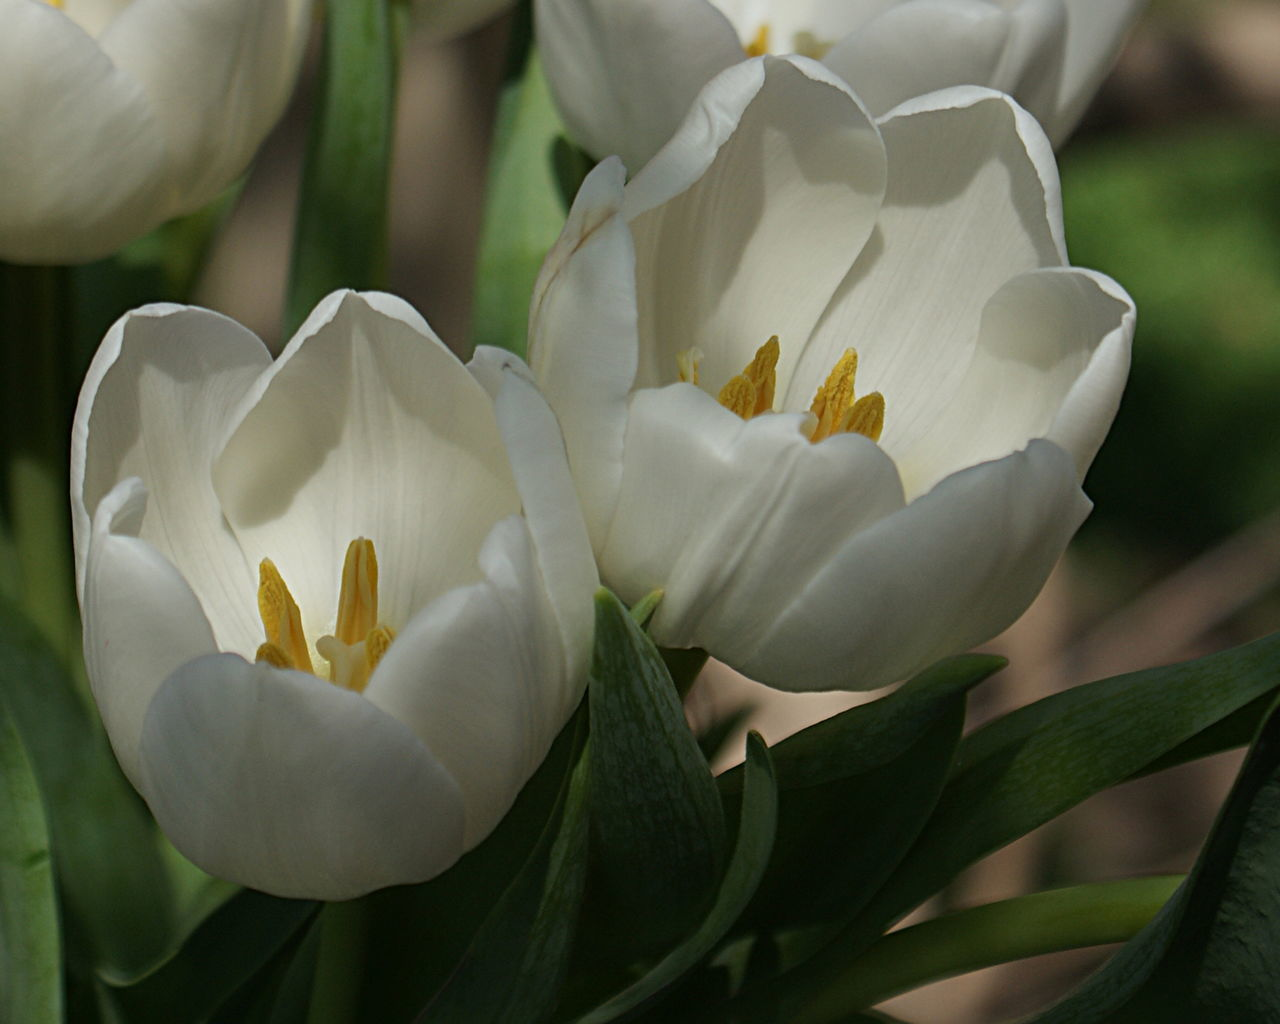 White tulips, spring flowers, outside in natural dappled sunlight. Beauty In Nature Blooming Close-up Day Flower Flower Head Fragility Freshness Growing Leaves Nature No People Outdoors Petal Plant Spring Spring Flowers Sunlight Tulips White Color White Tulips